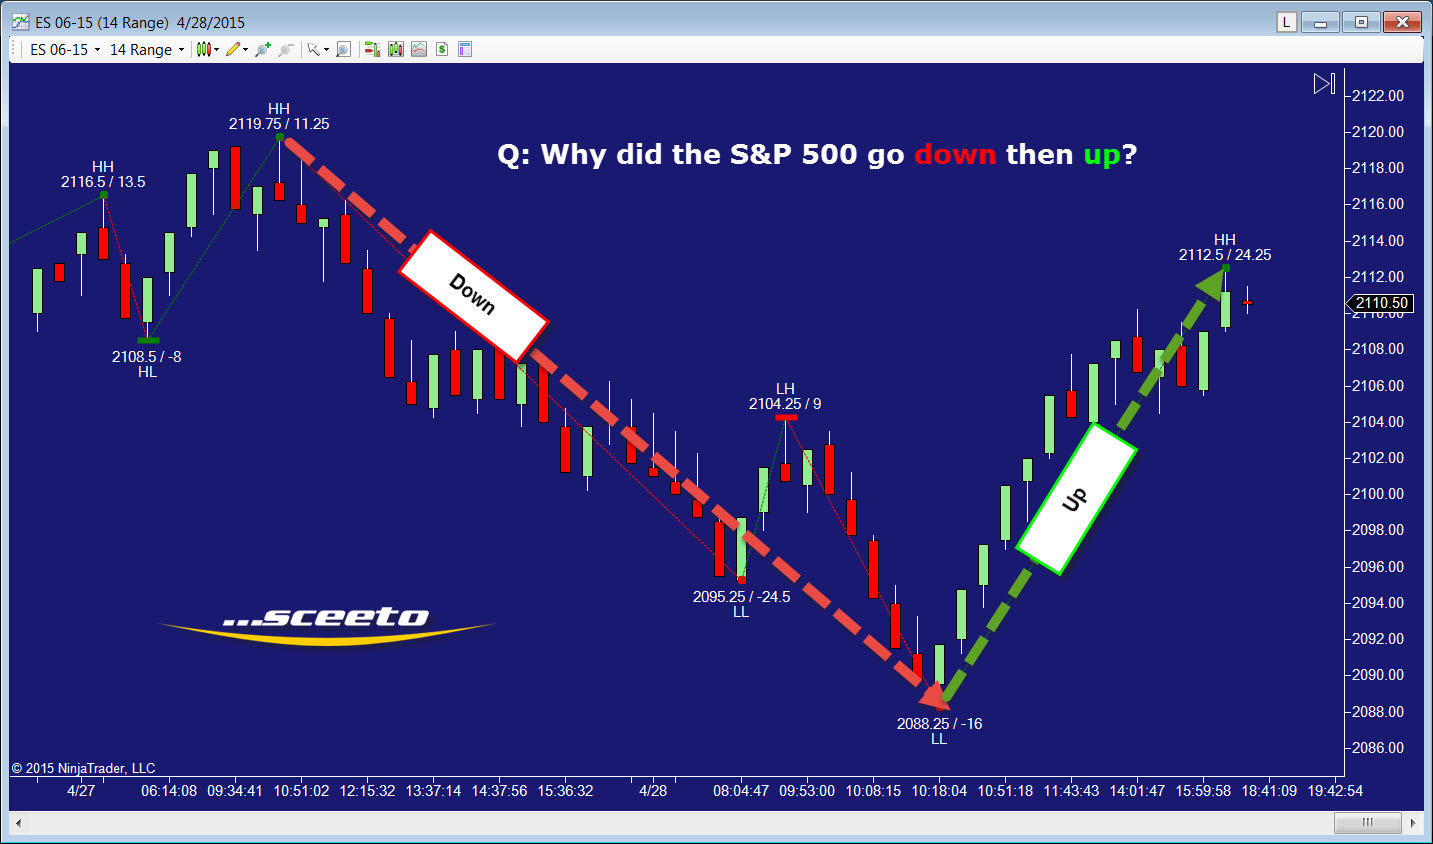 Why did the S&P 500 go down then up?